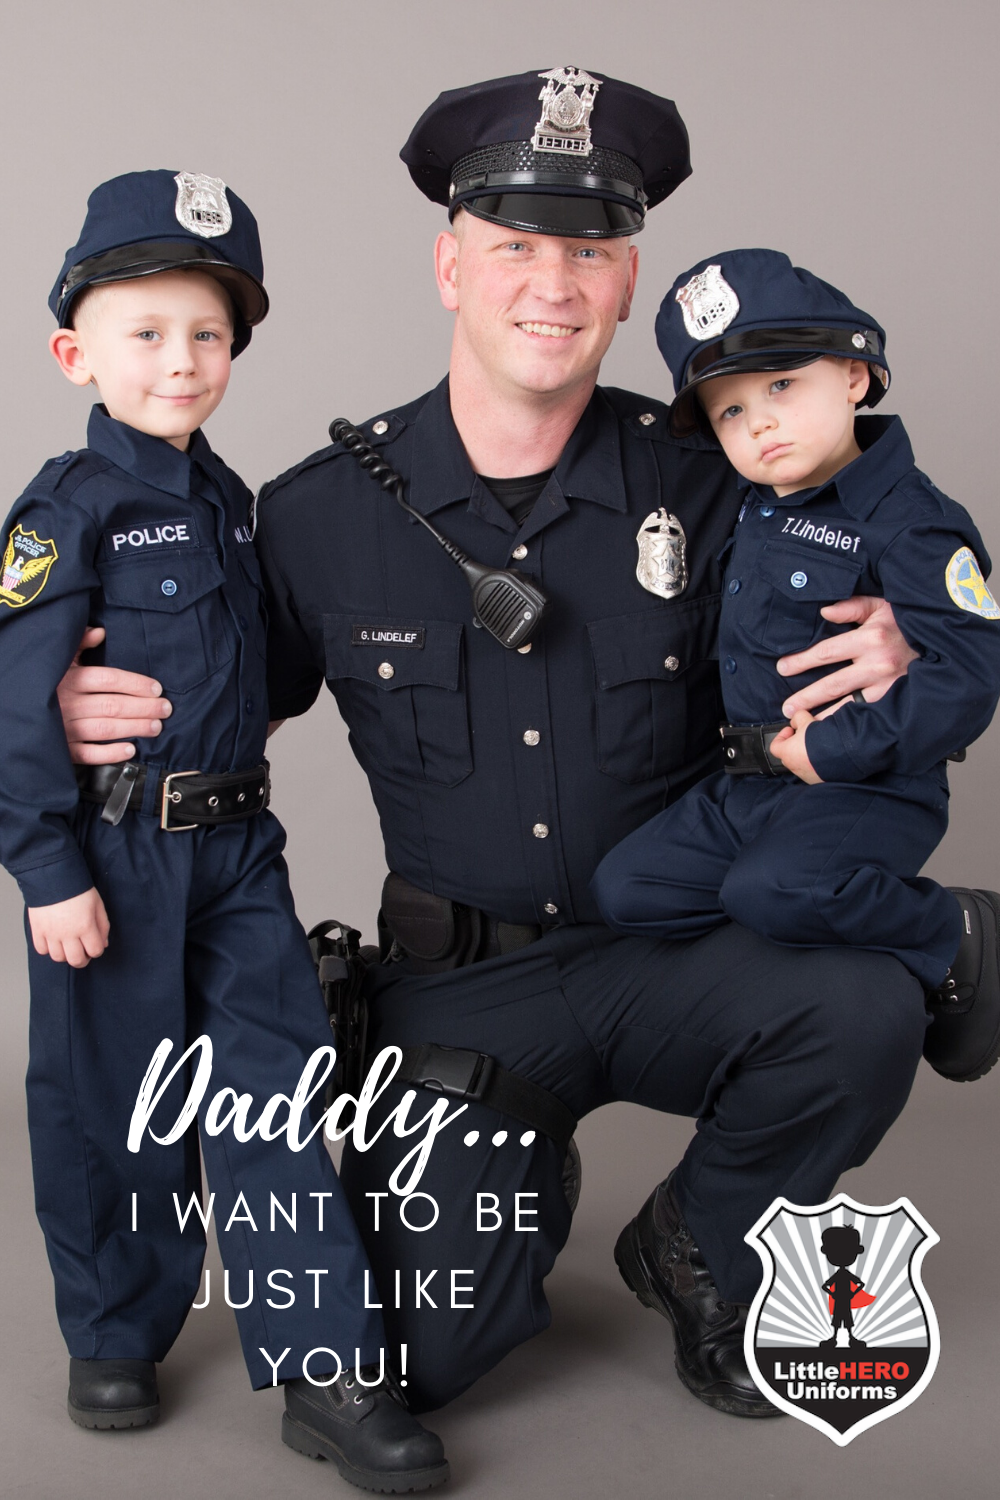 Authentic Personalized Kid S Police Costume Like The Real Uniform Kids Police Police Costume Police Costume Kids